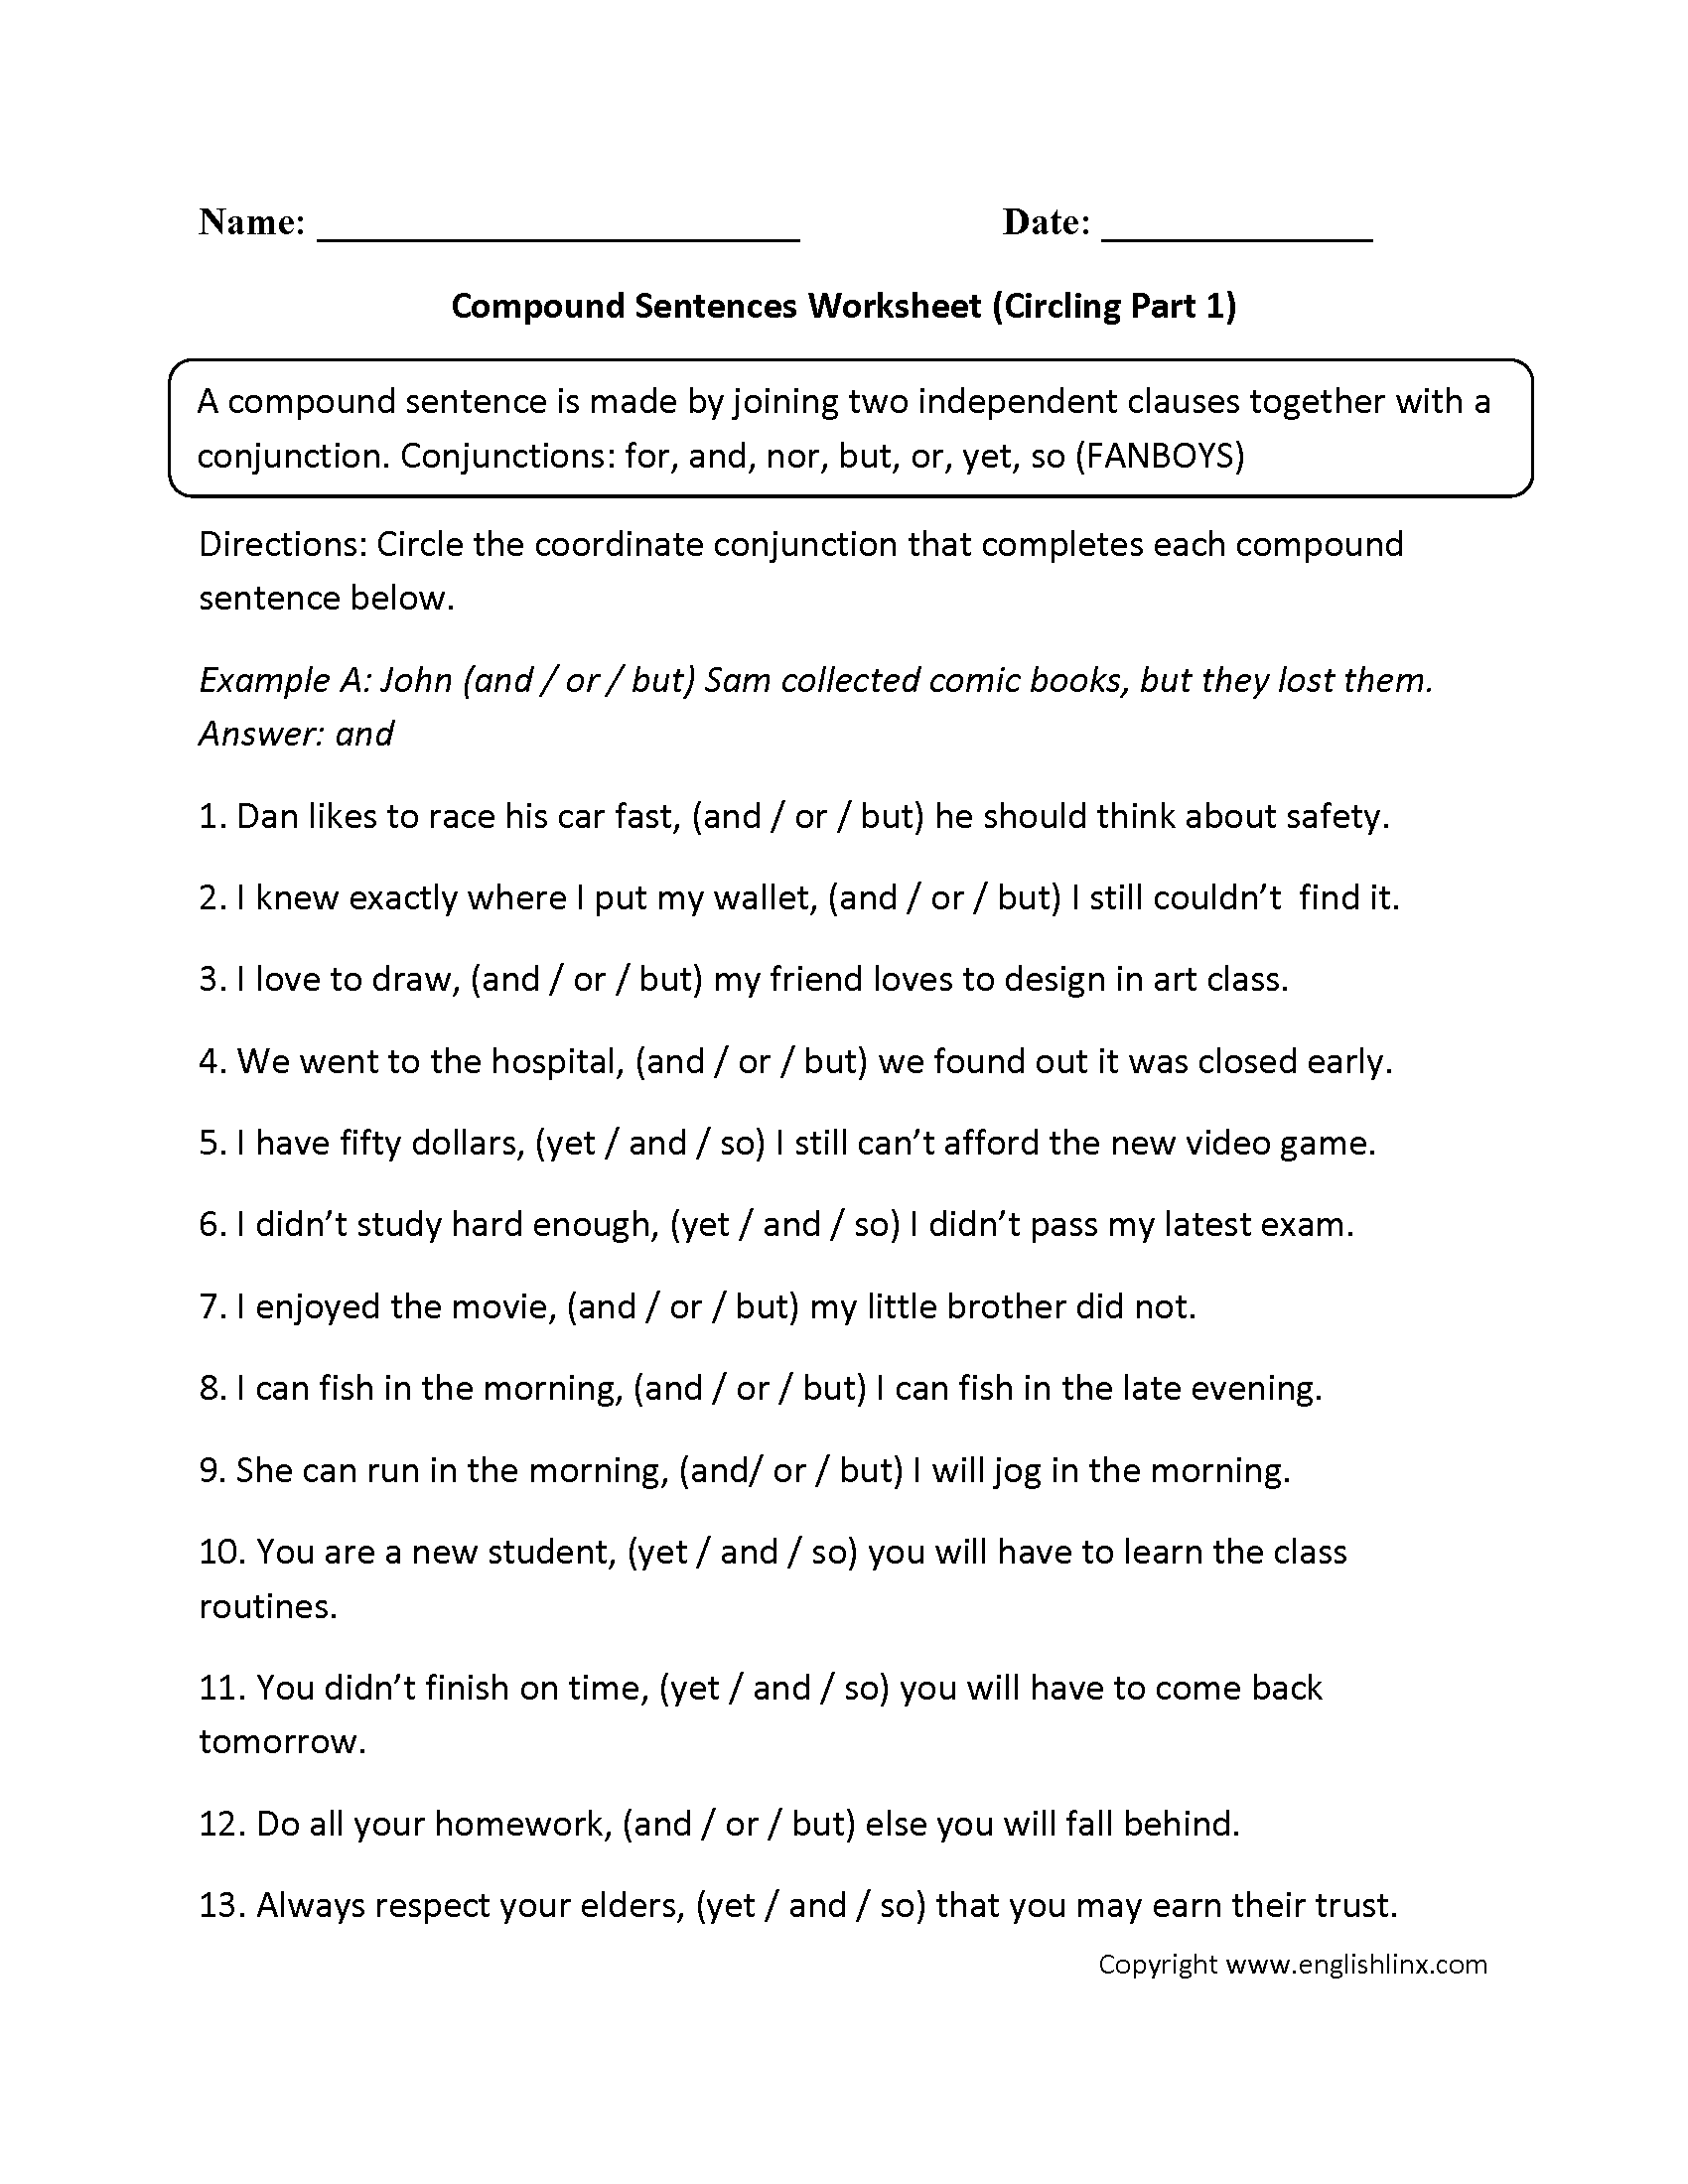 Circling Compound Sentences Worksheet